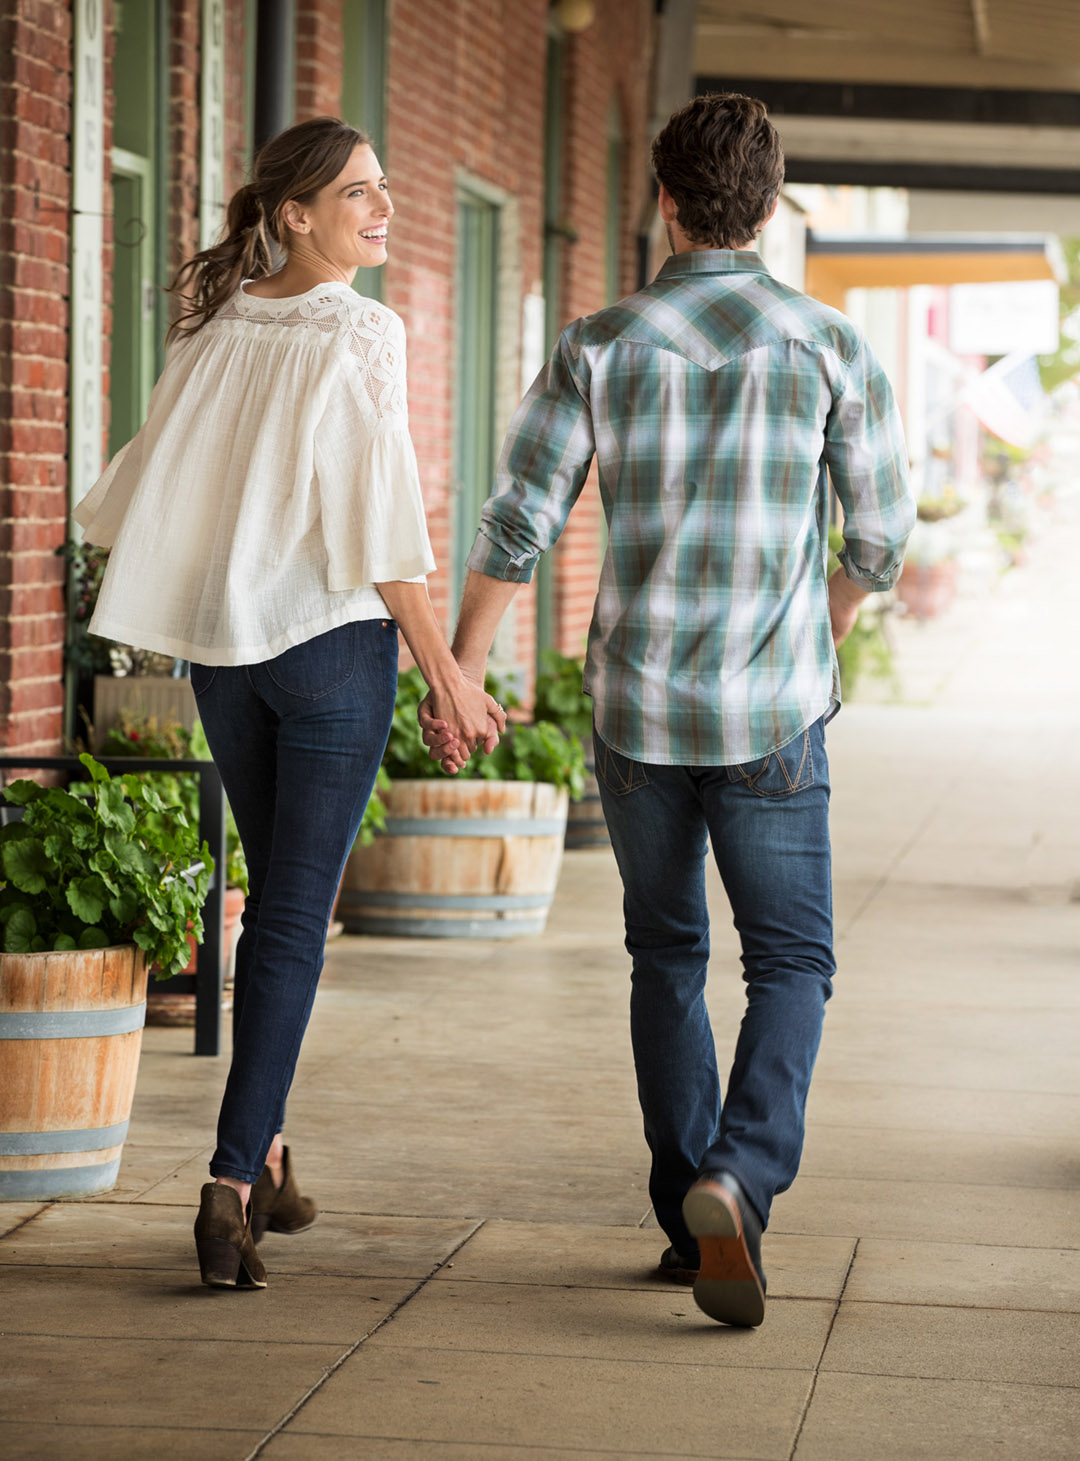 Young Couple Walks Through Town For Wrangler Jeans